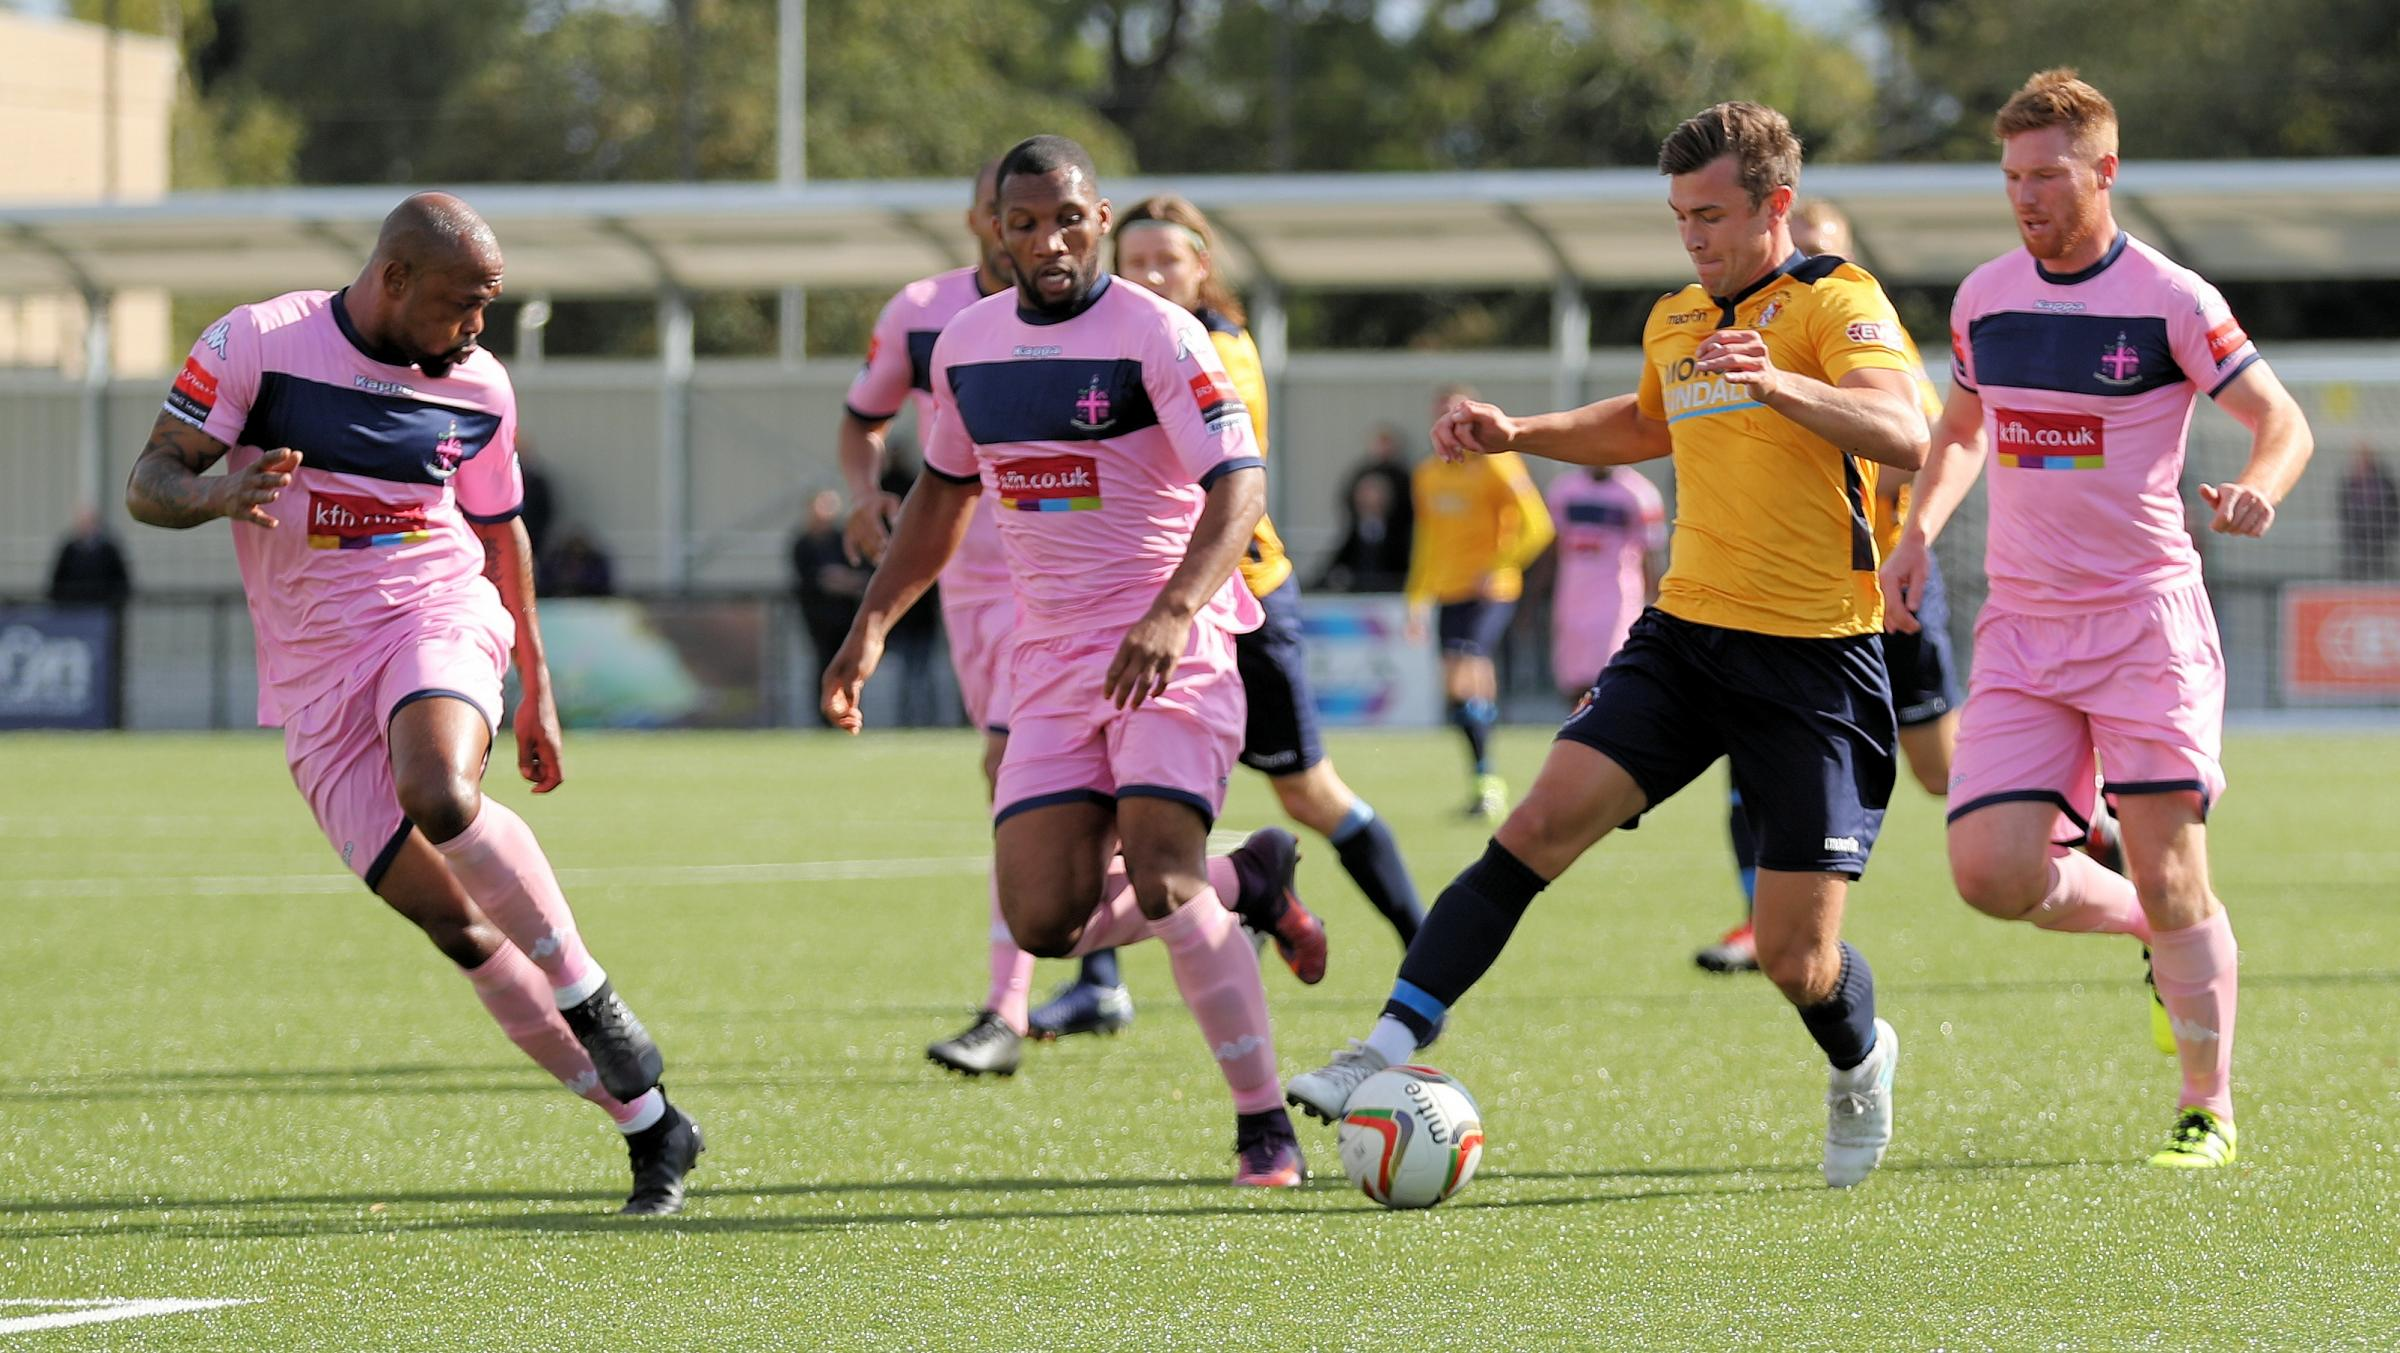 Striker Chris Flood scored an early goal for Slough Town but it was not enough to avoid at 3-1 defeat away at St Neots Town on Saturday. PHOTO: Gary House Photography.